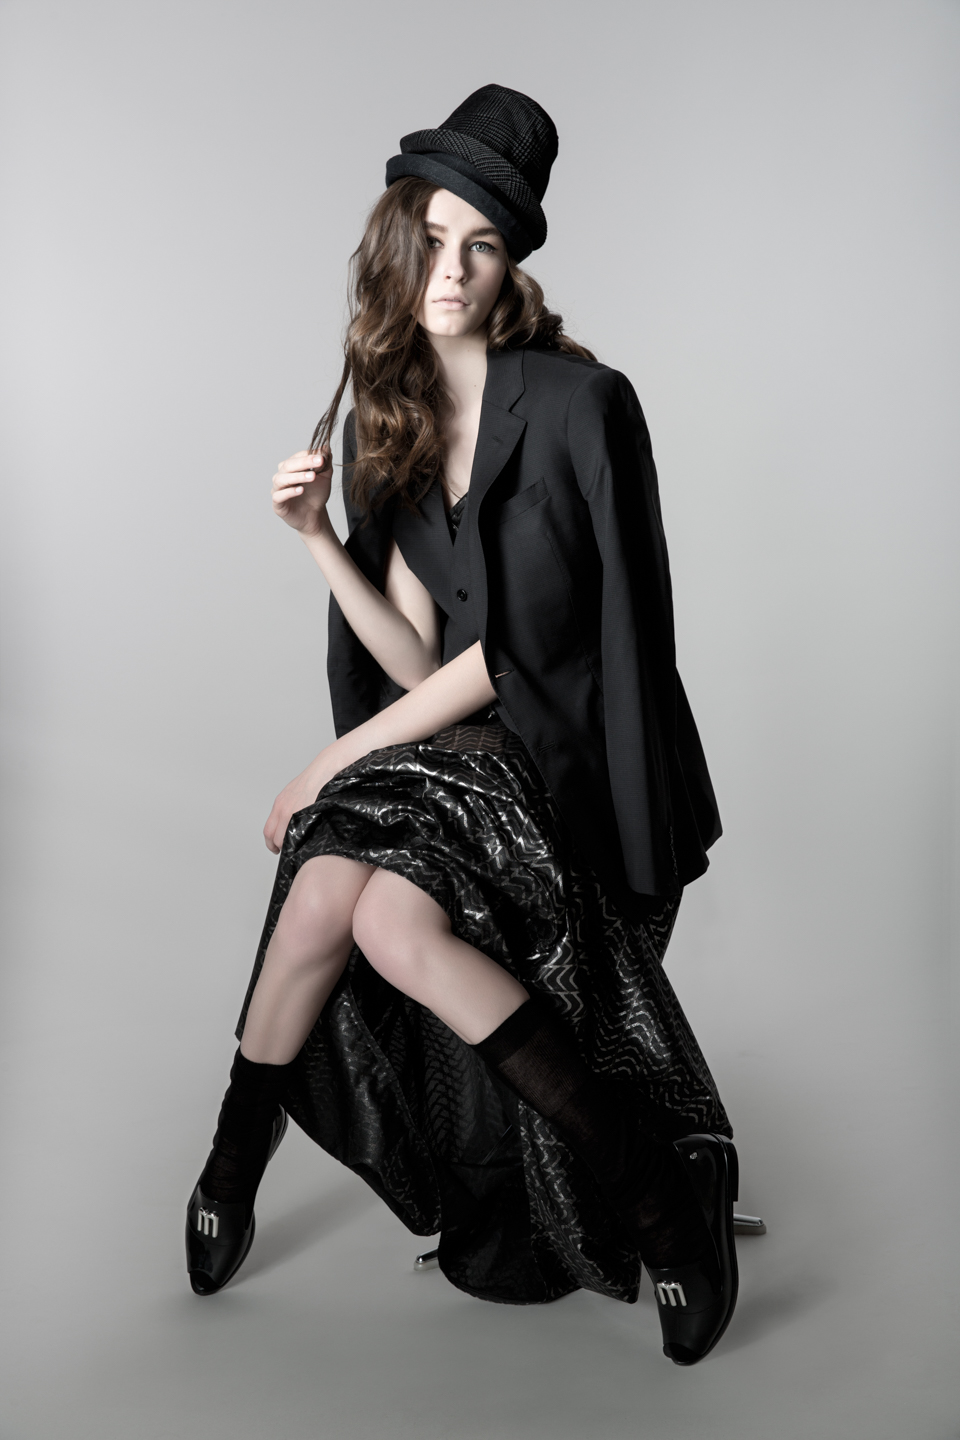 In his shoes editorial - Galli Trevisan photographers